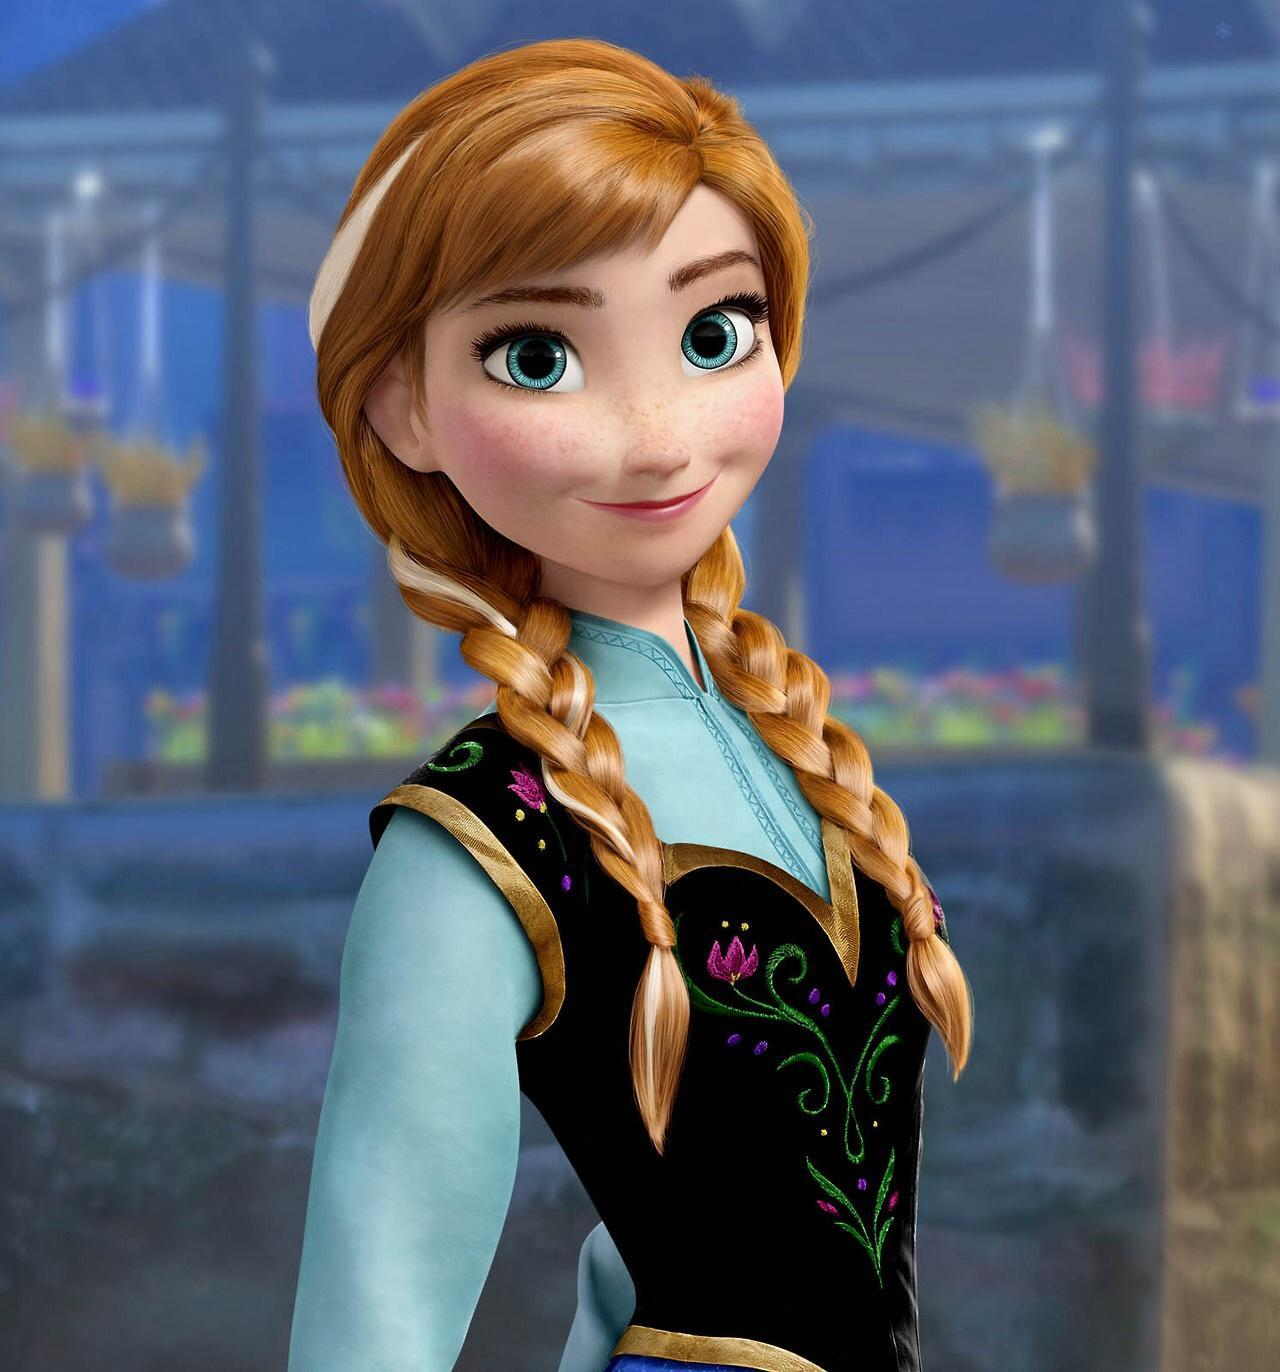 Who voices Anna?